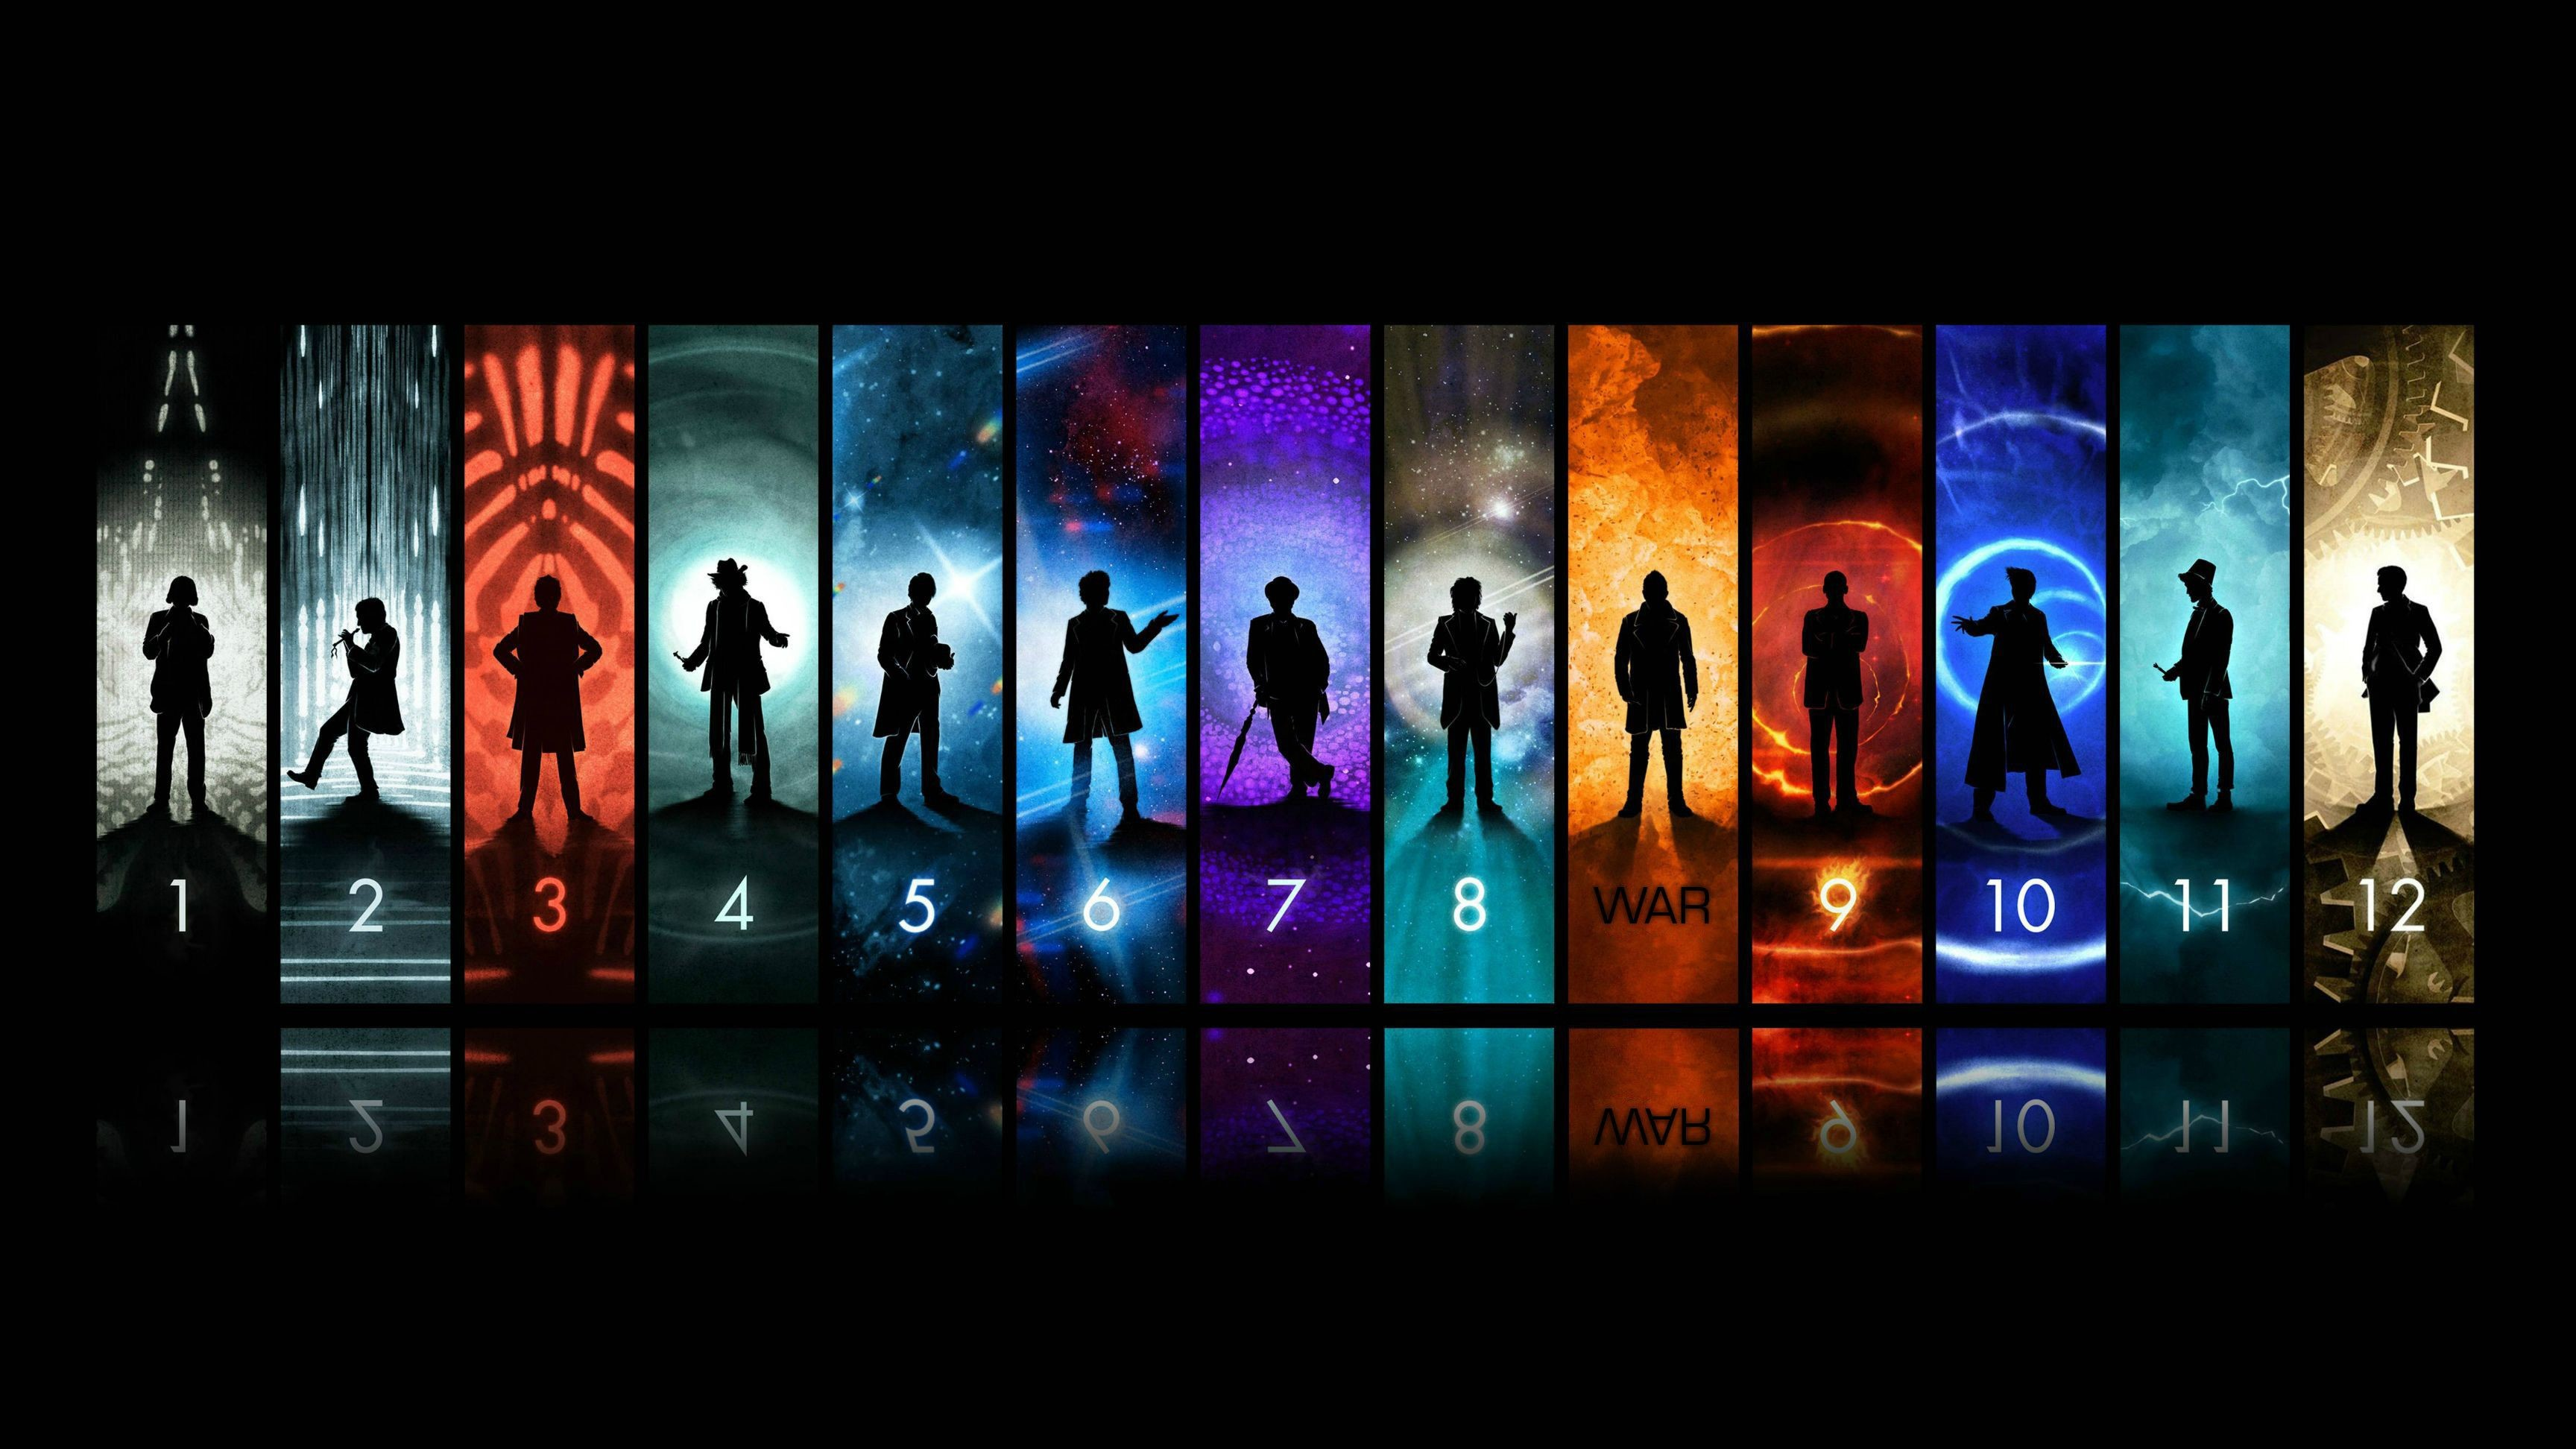 Res: 3456x1944, Doctor Who Wallpaper (1 through 12 with War) - Imgur (Number 8 will